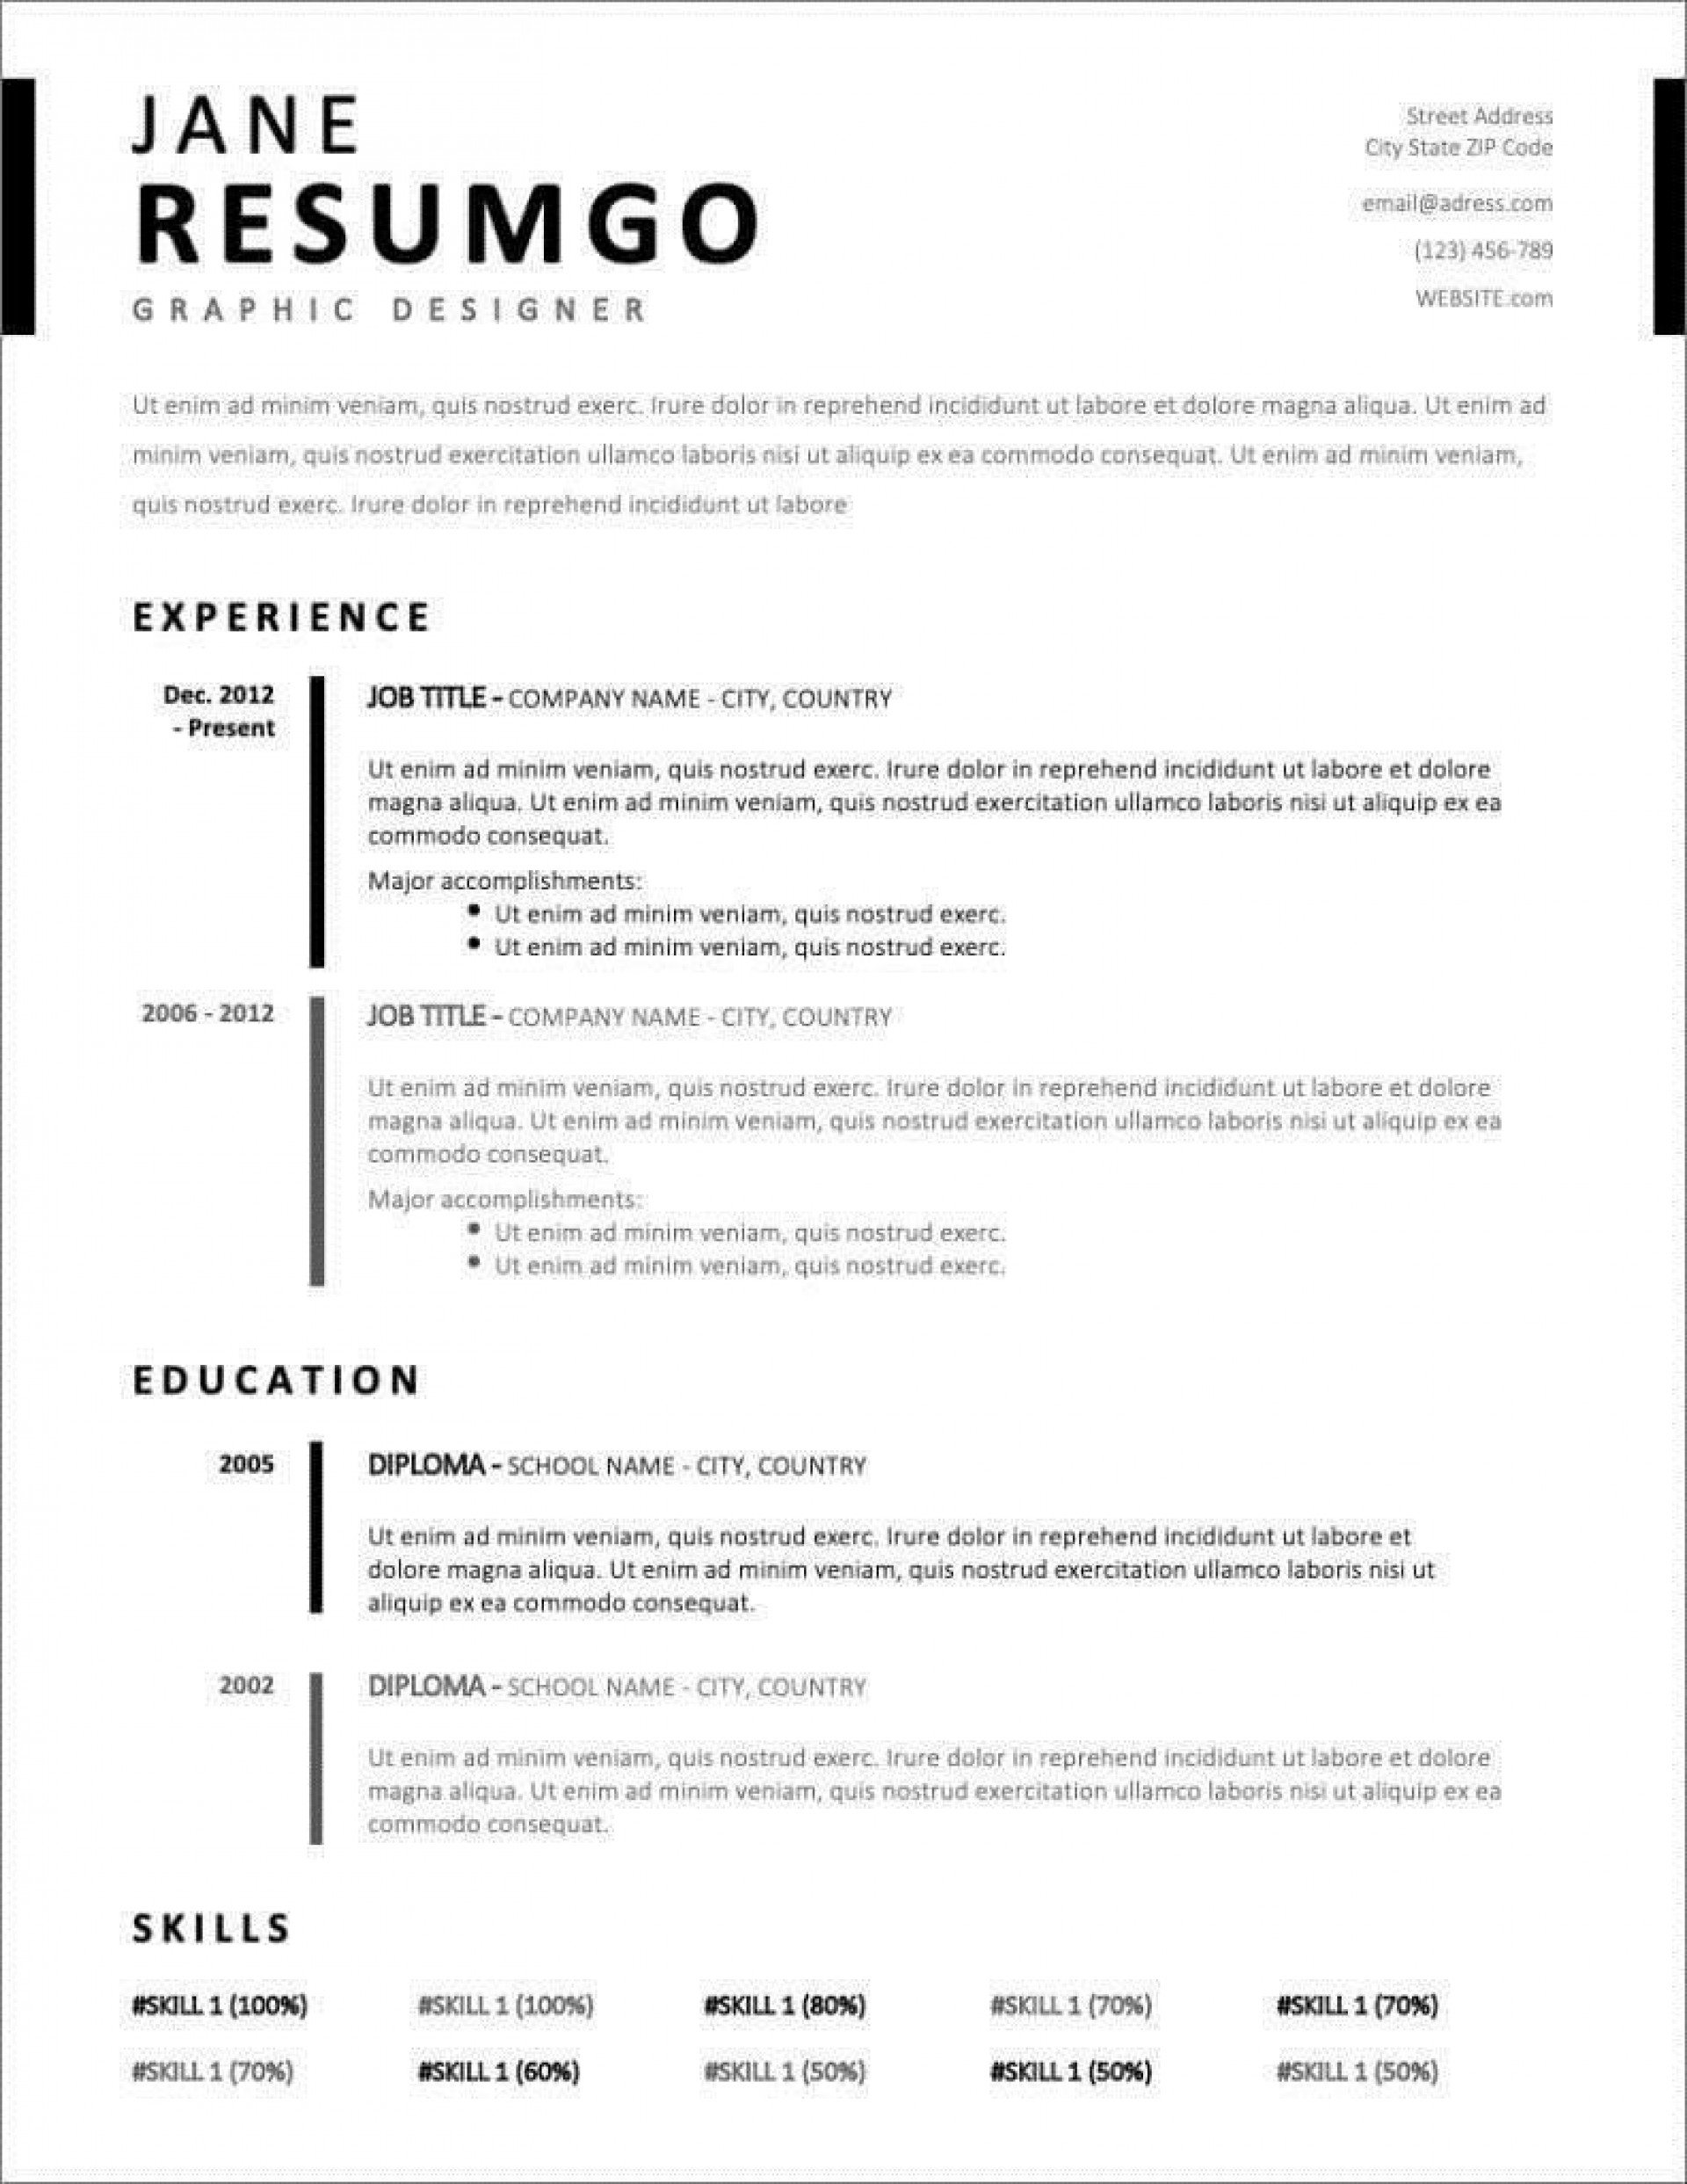 002 Excellent Download Resume Example Free Picture  Hr Sample Visual Cv1920